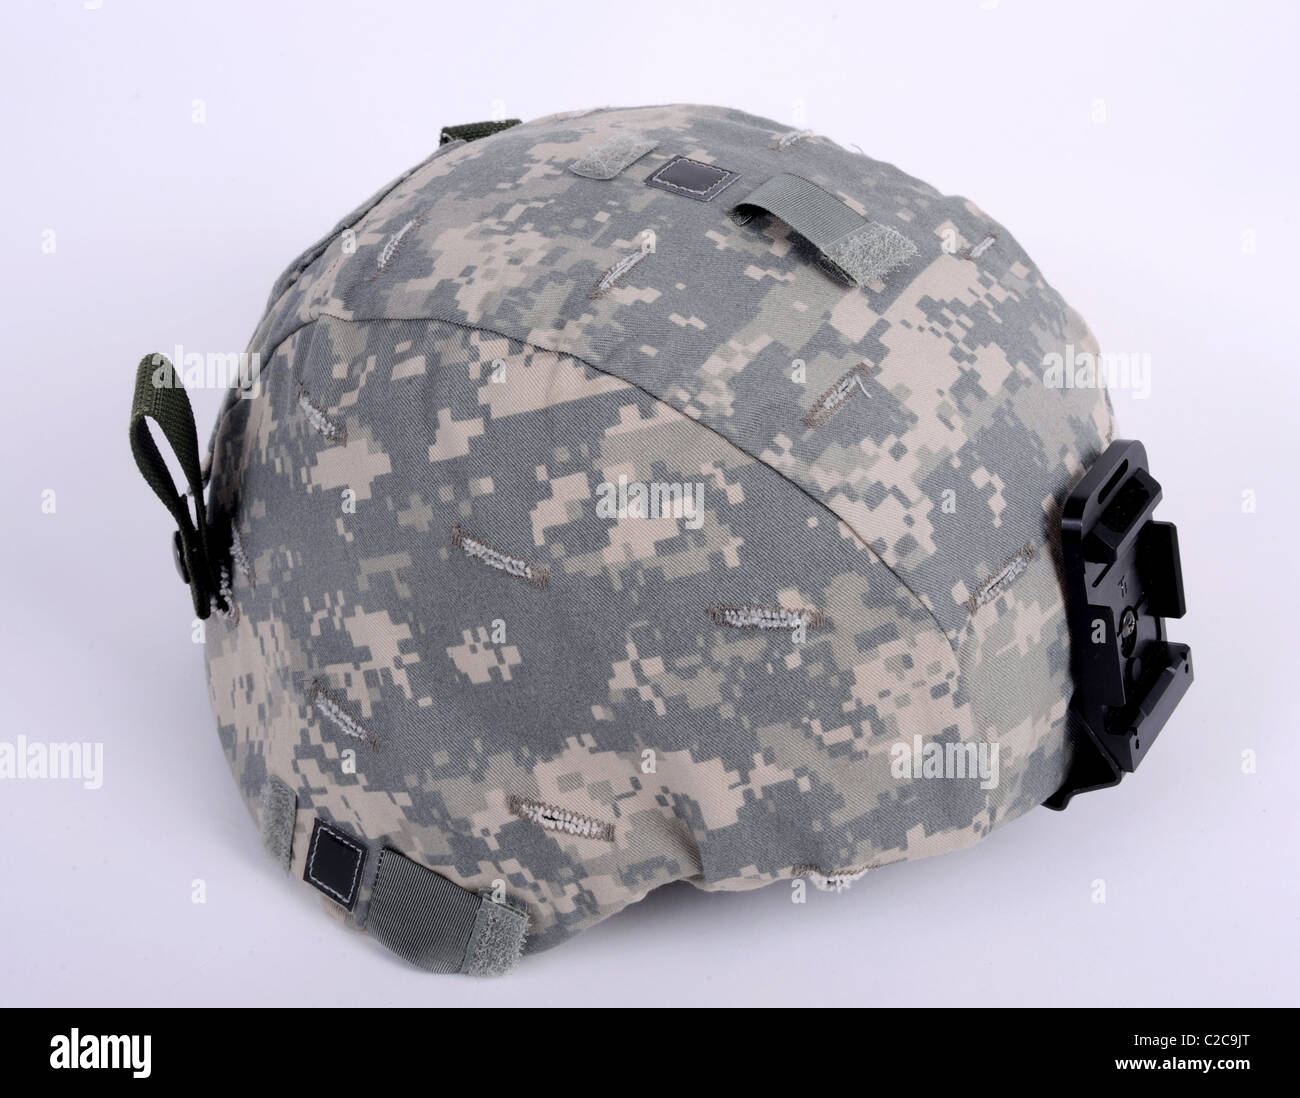 21st century helmet, the American ACH (Advanced Combat Helmet). The helmet is worn with the UCP camo cover. This - Stock Image